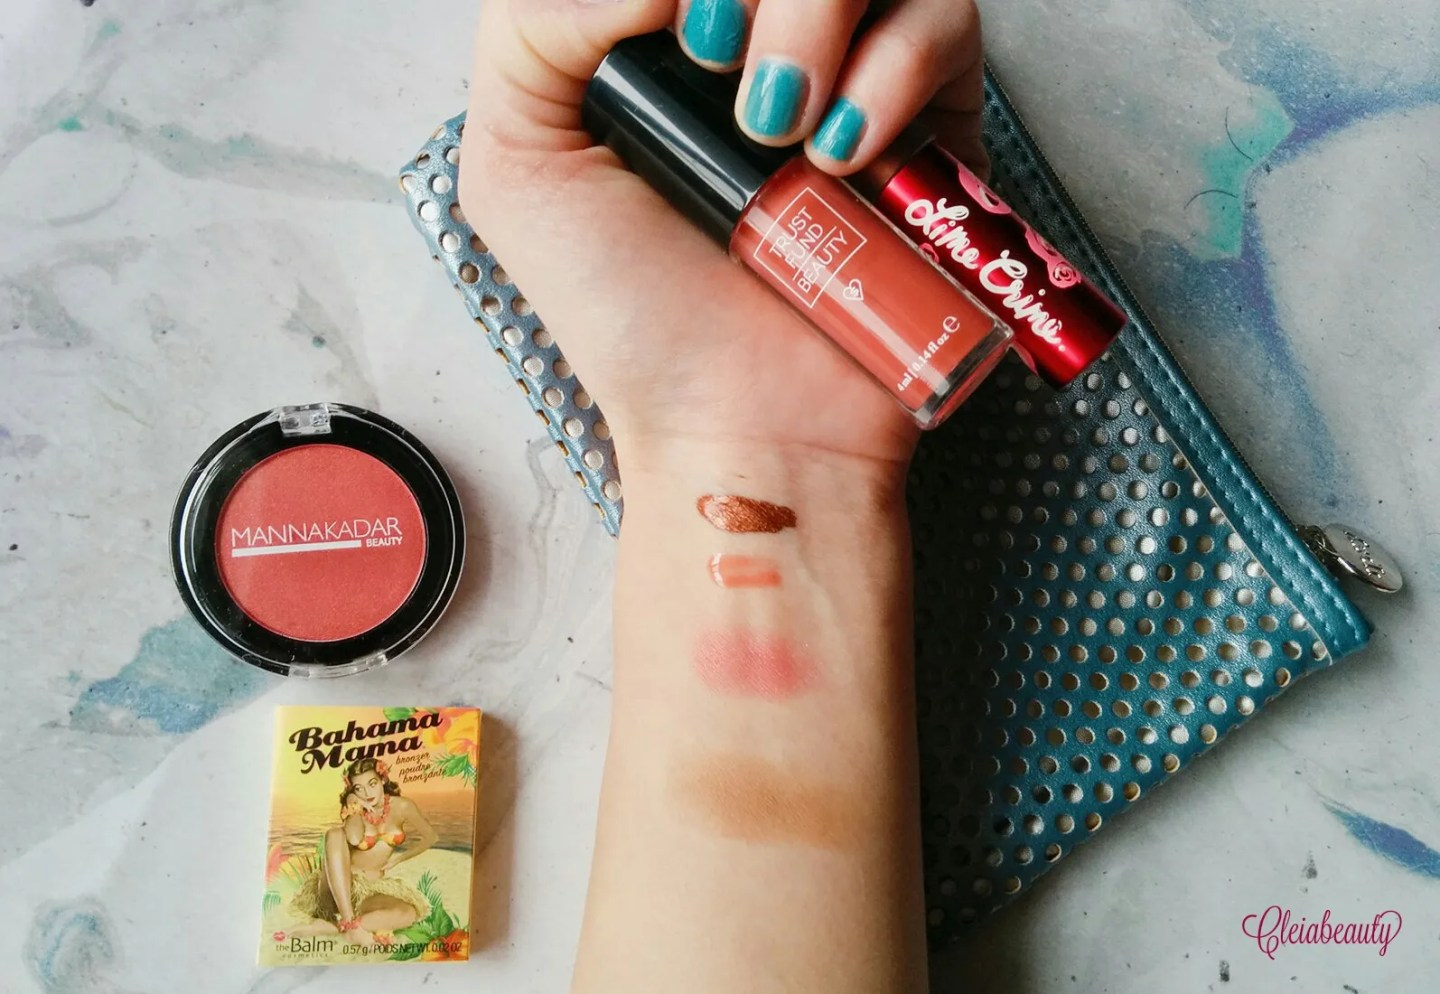 2017 January Ipsy Glam Bag Swatches